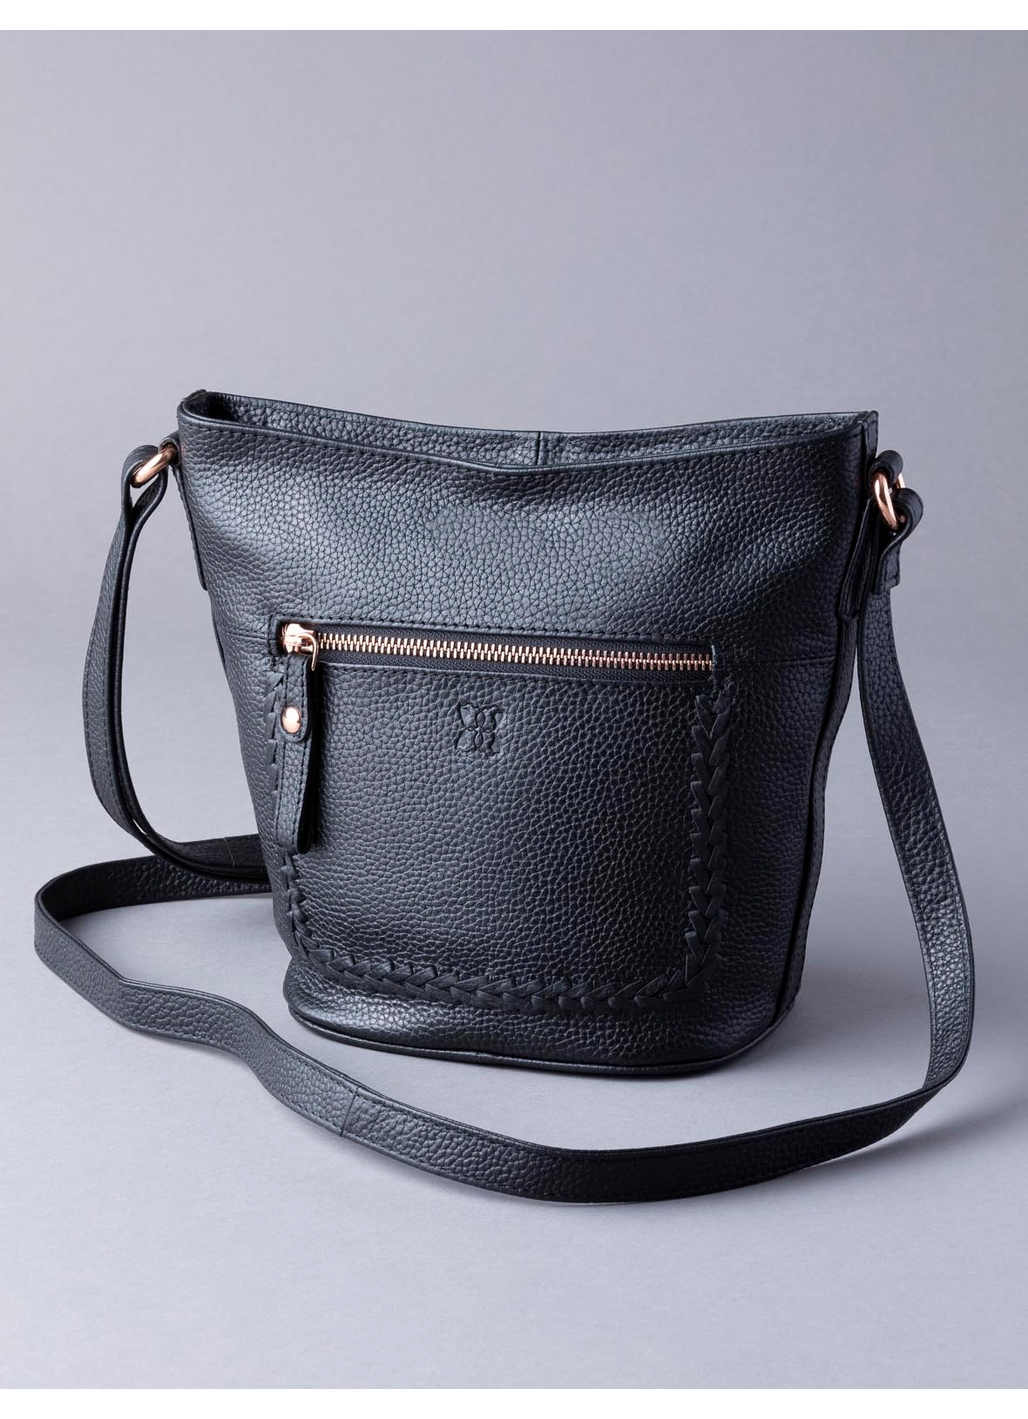 Evie Leather Cross Body Bag in Black